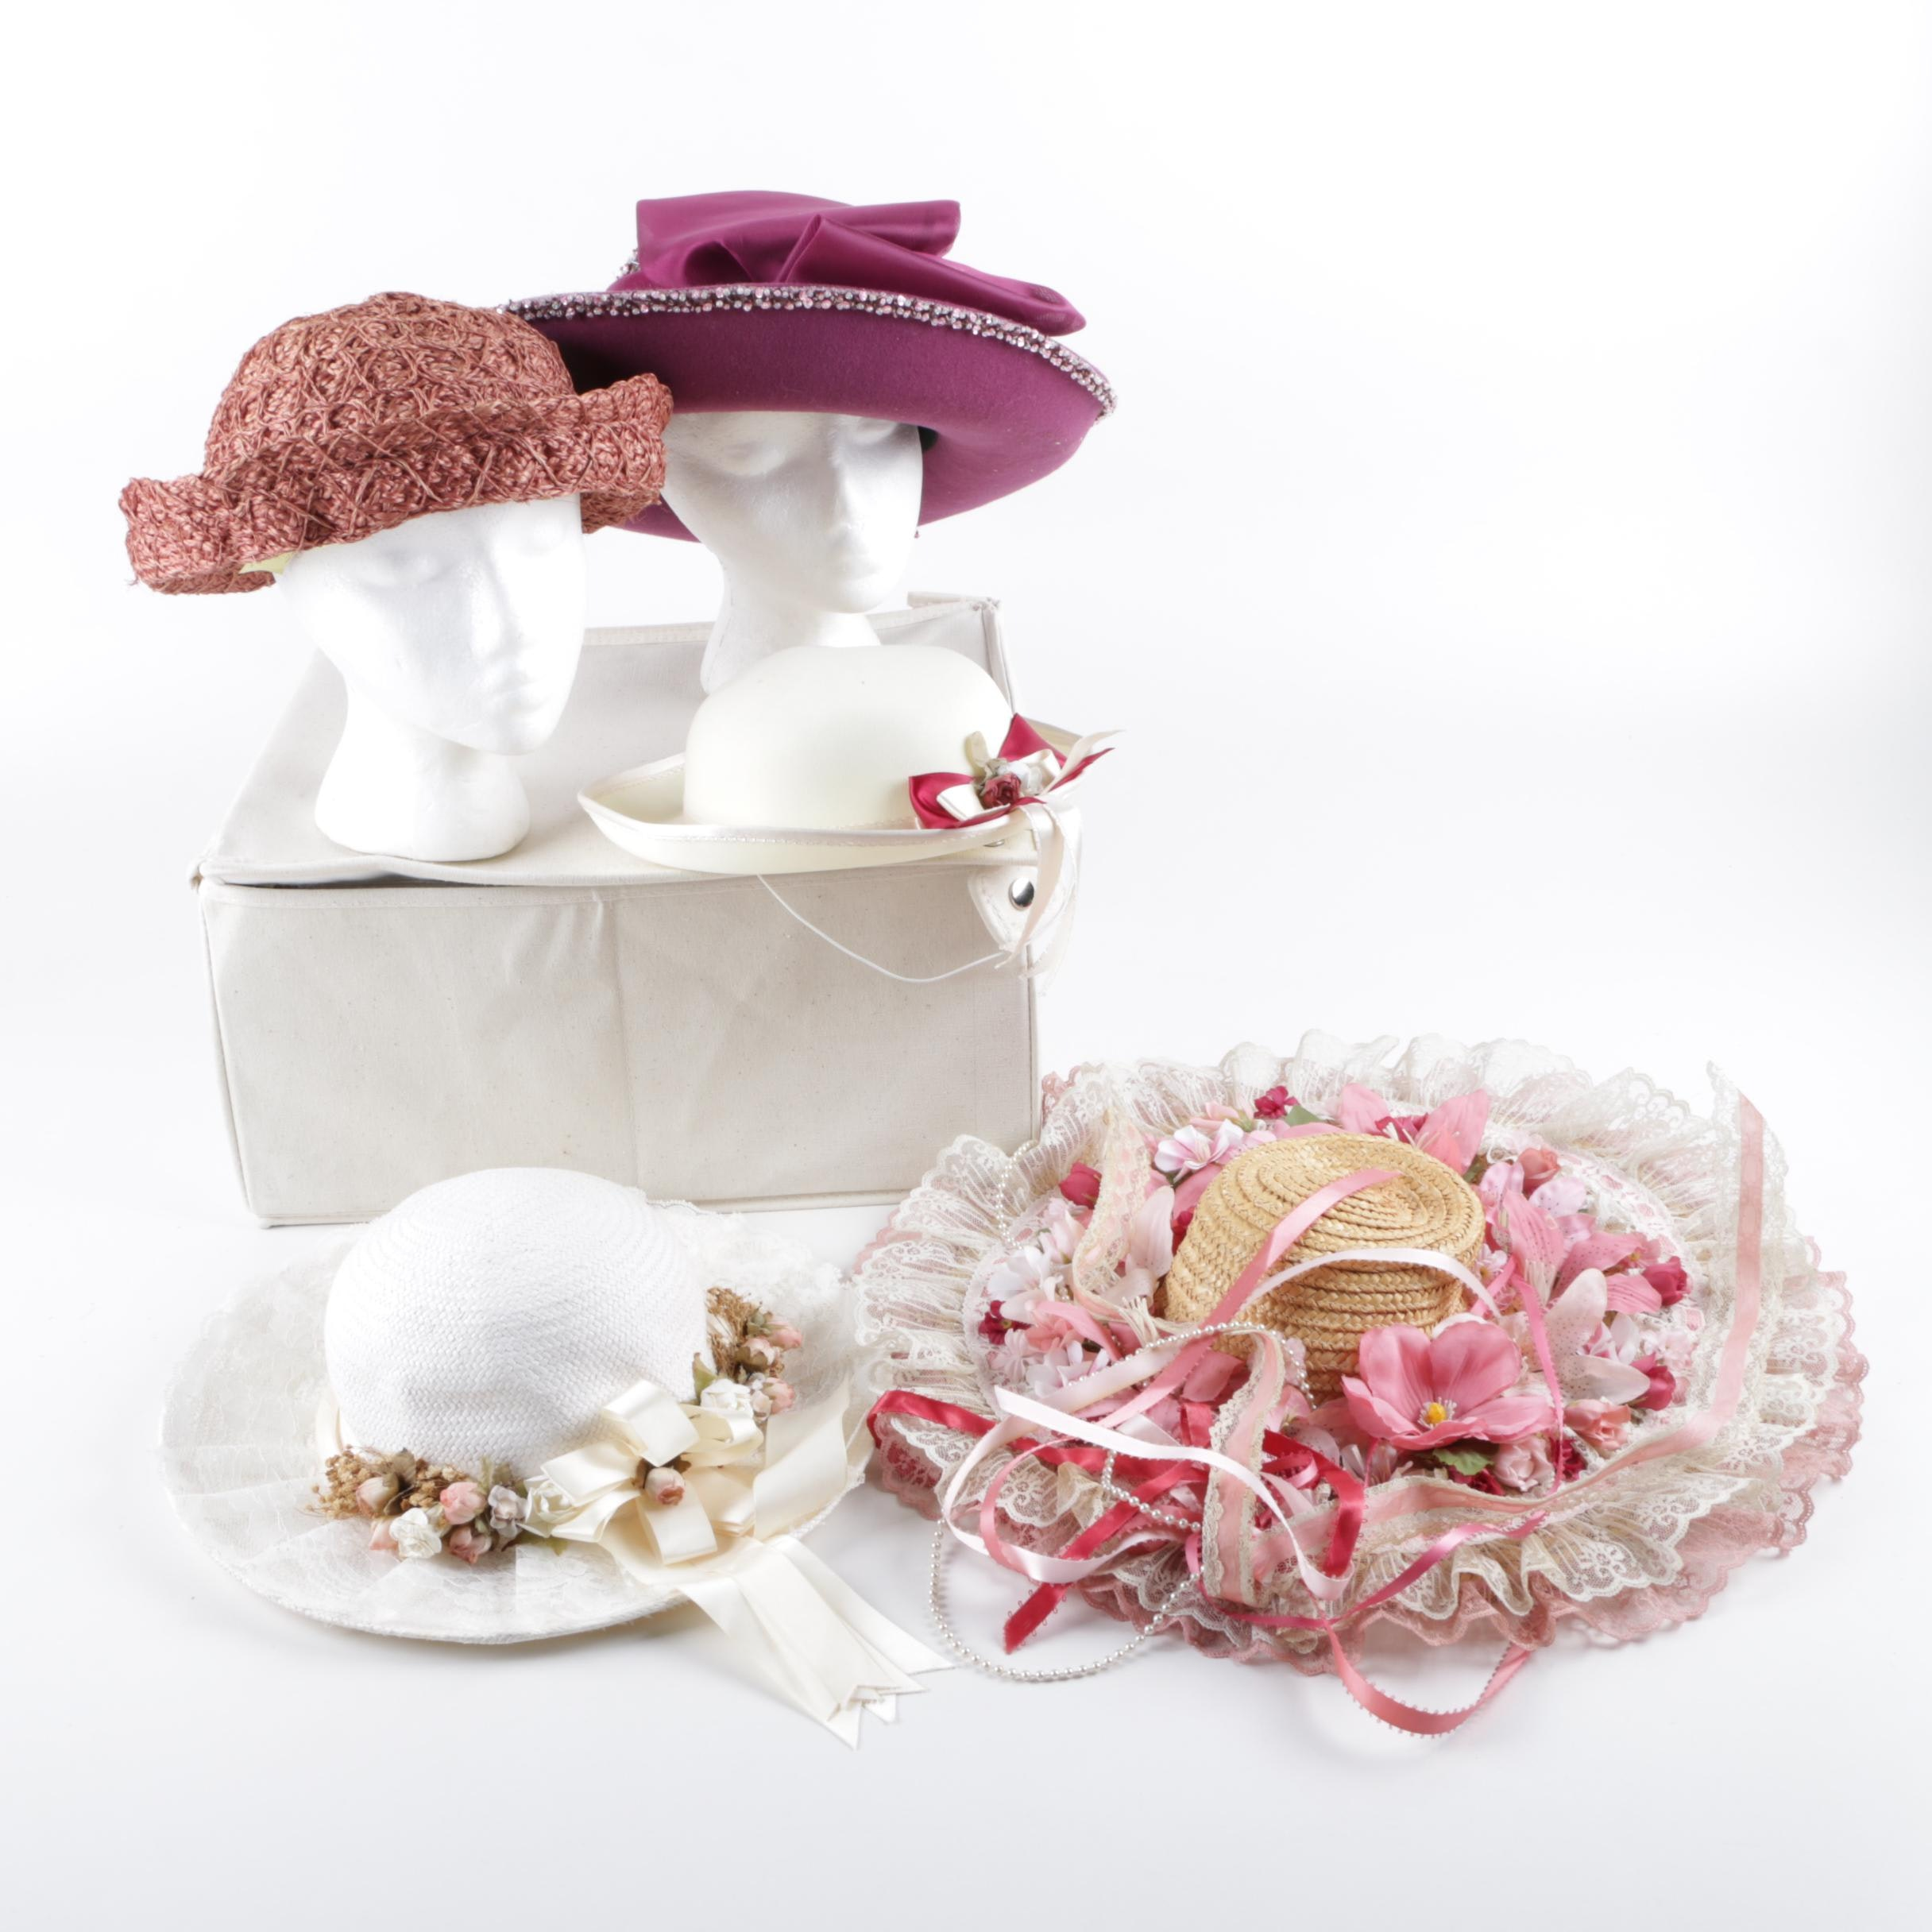 Women's Vintage Hats with Whittall's & Shon